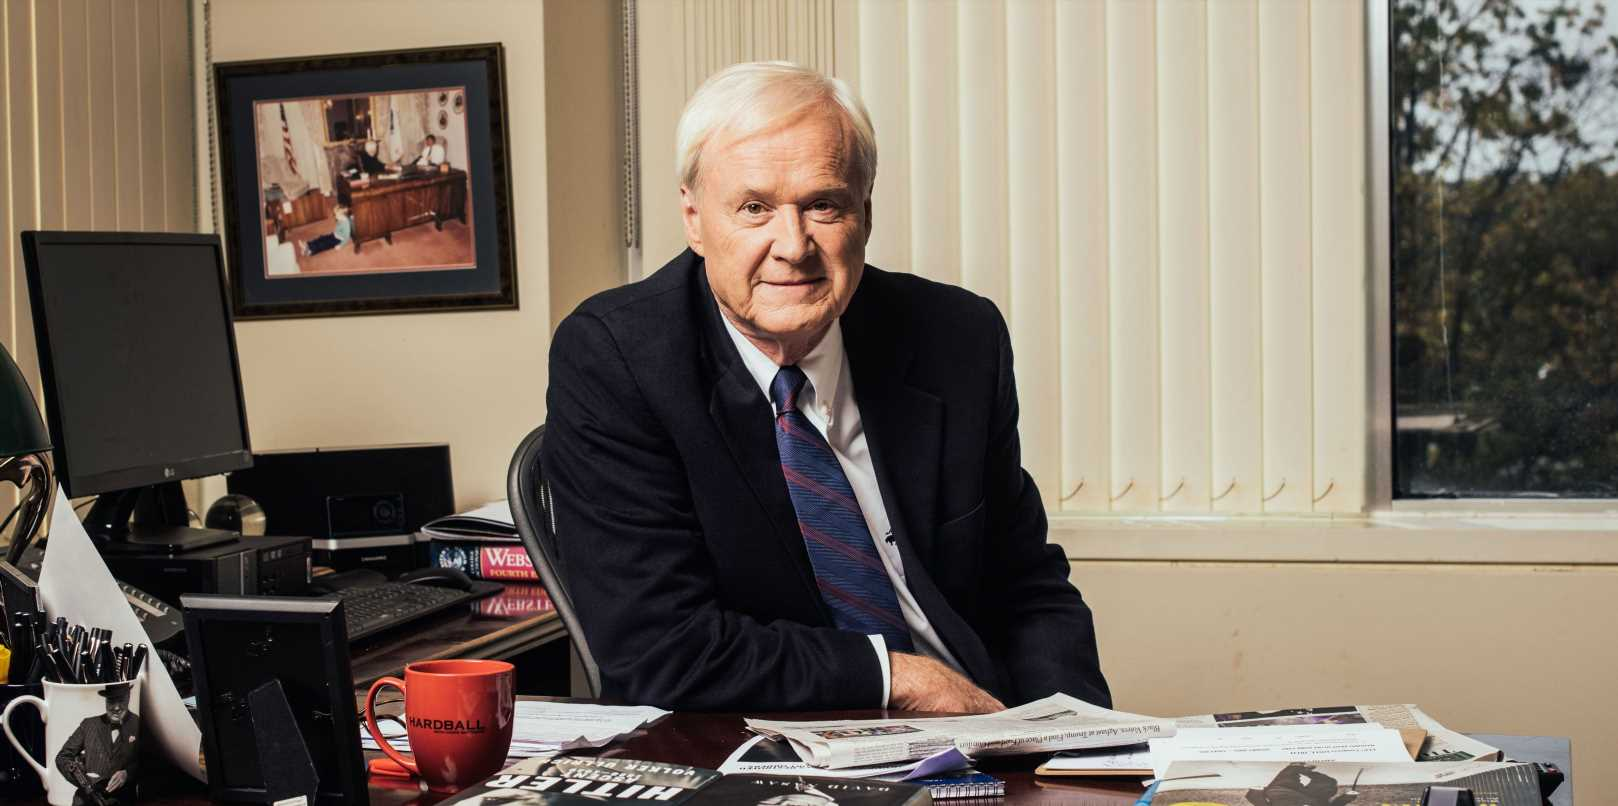 Chris Matthews Opens Up About His Battle With Prostate Cancer